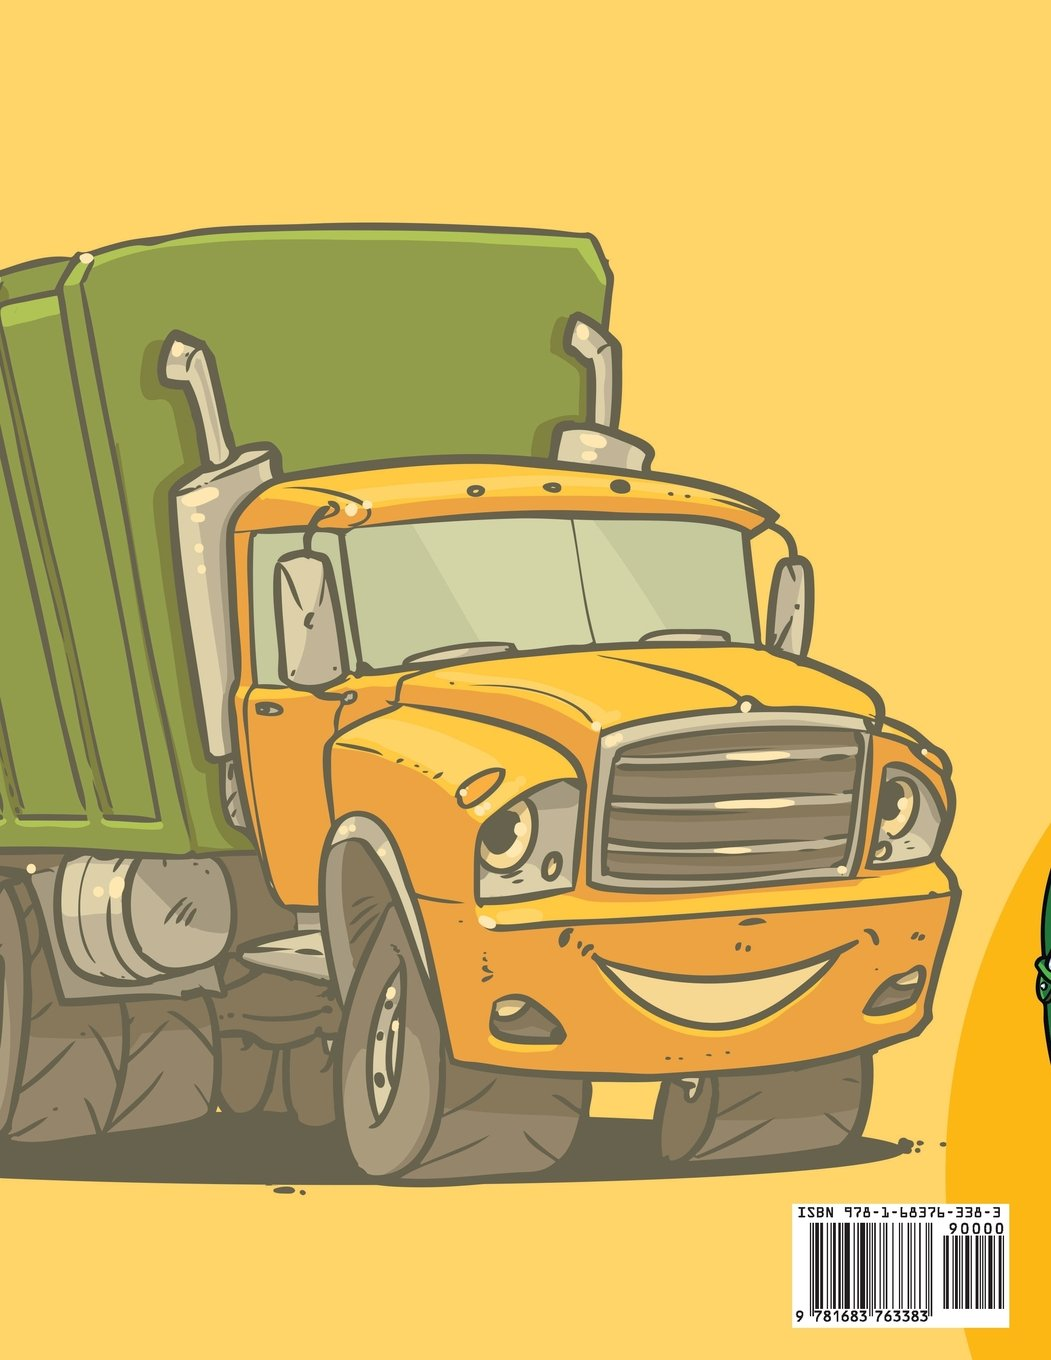 Garbage truck coloring book - Garbage Truck Coloring Books Activity Book Zone For Kids 9781683763383 Amazon Com Books